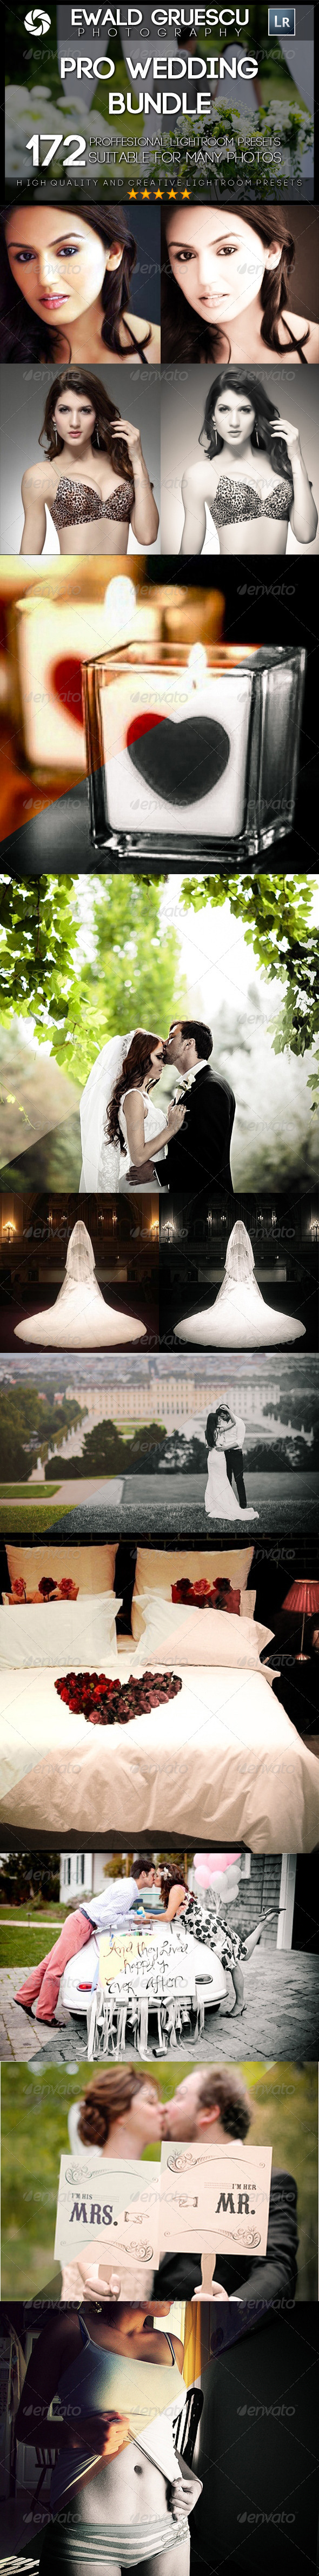 GraphicRiver 172 PRO Wedding BUNDLE 7619607